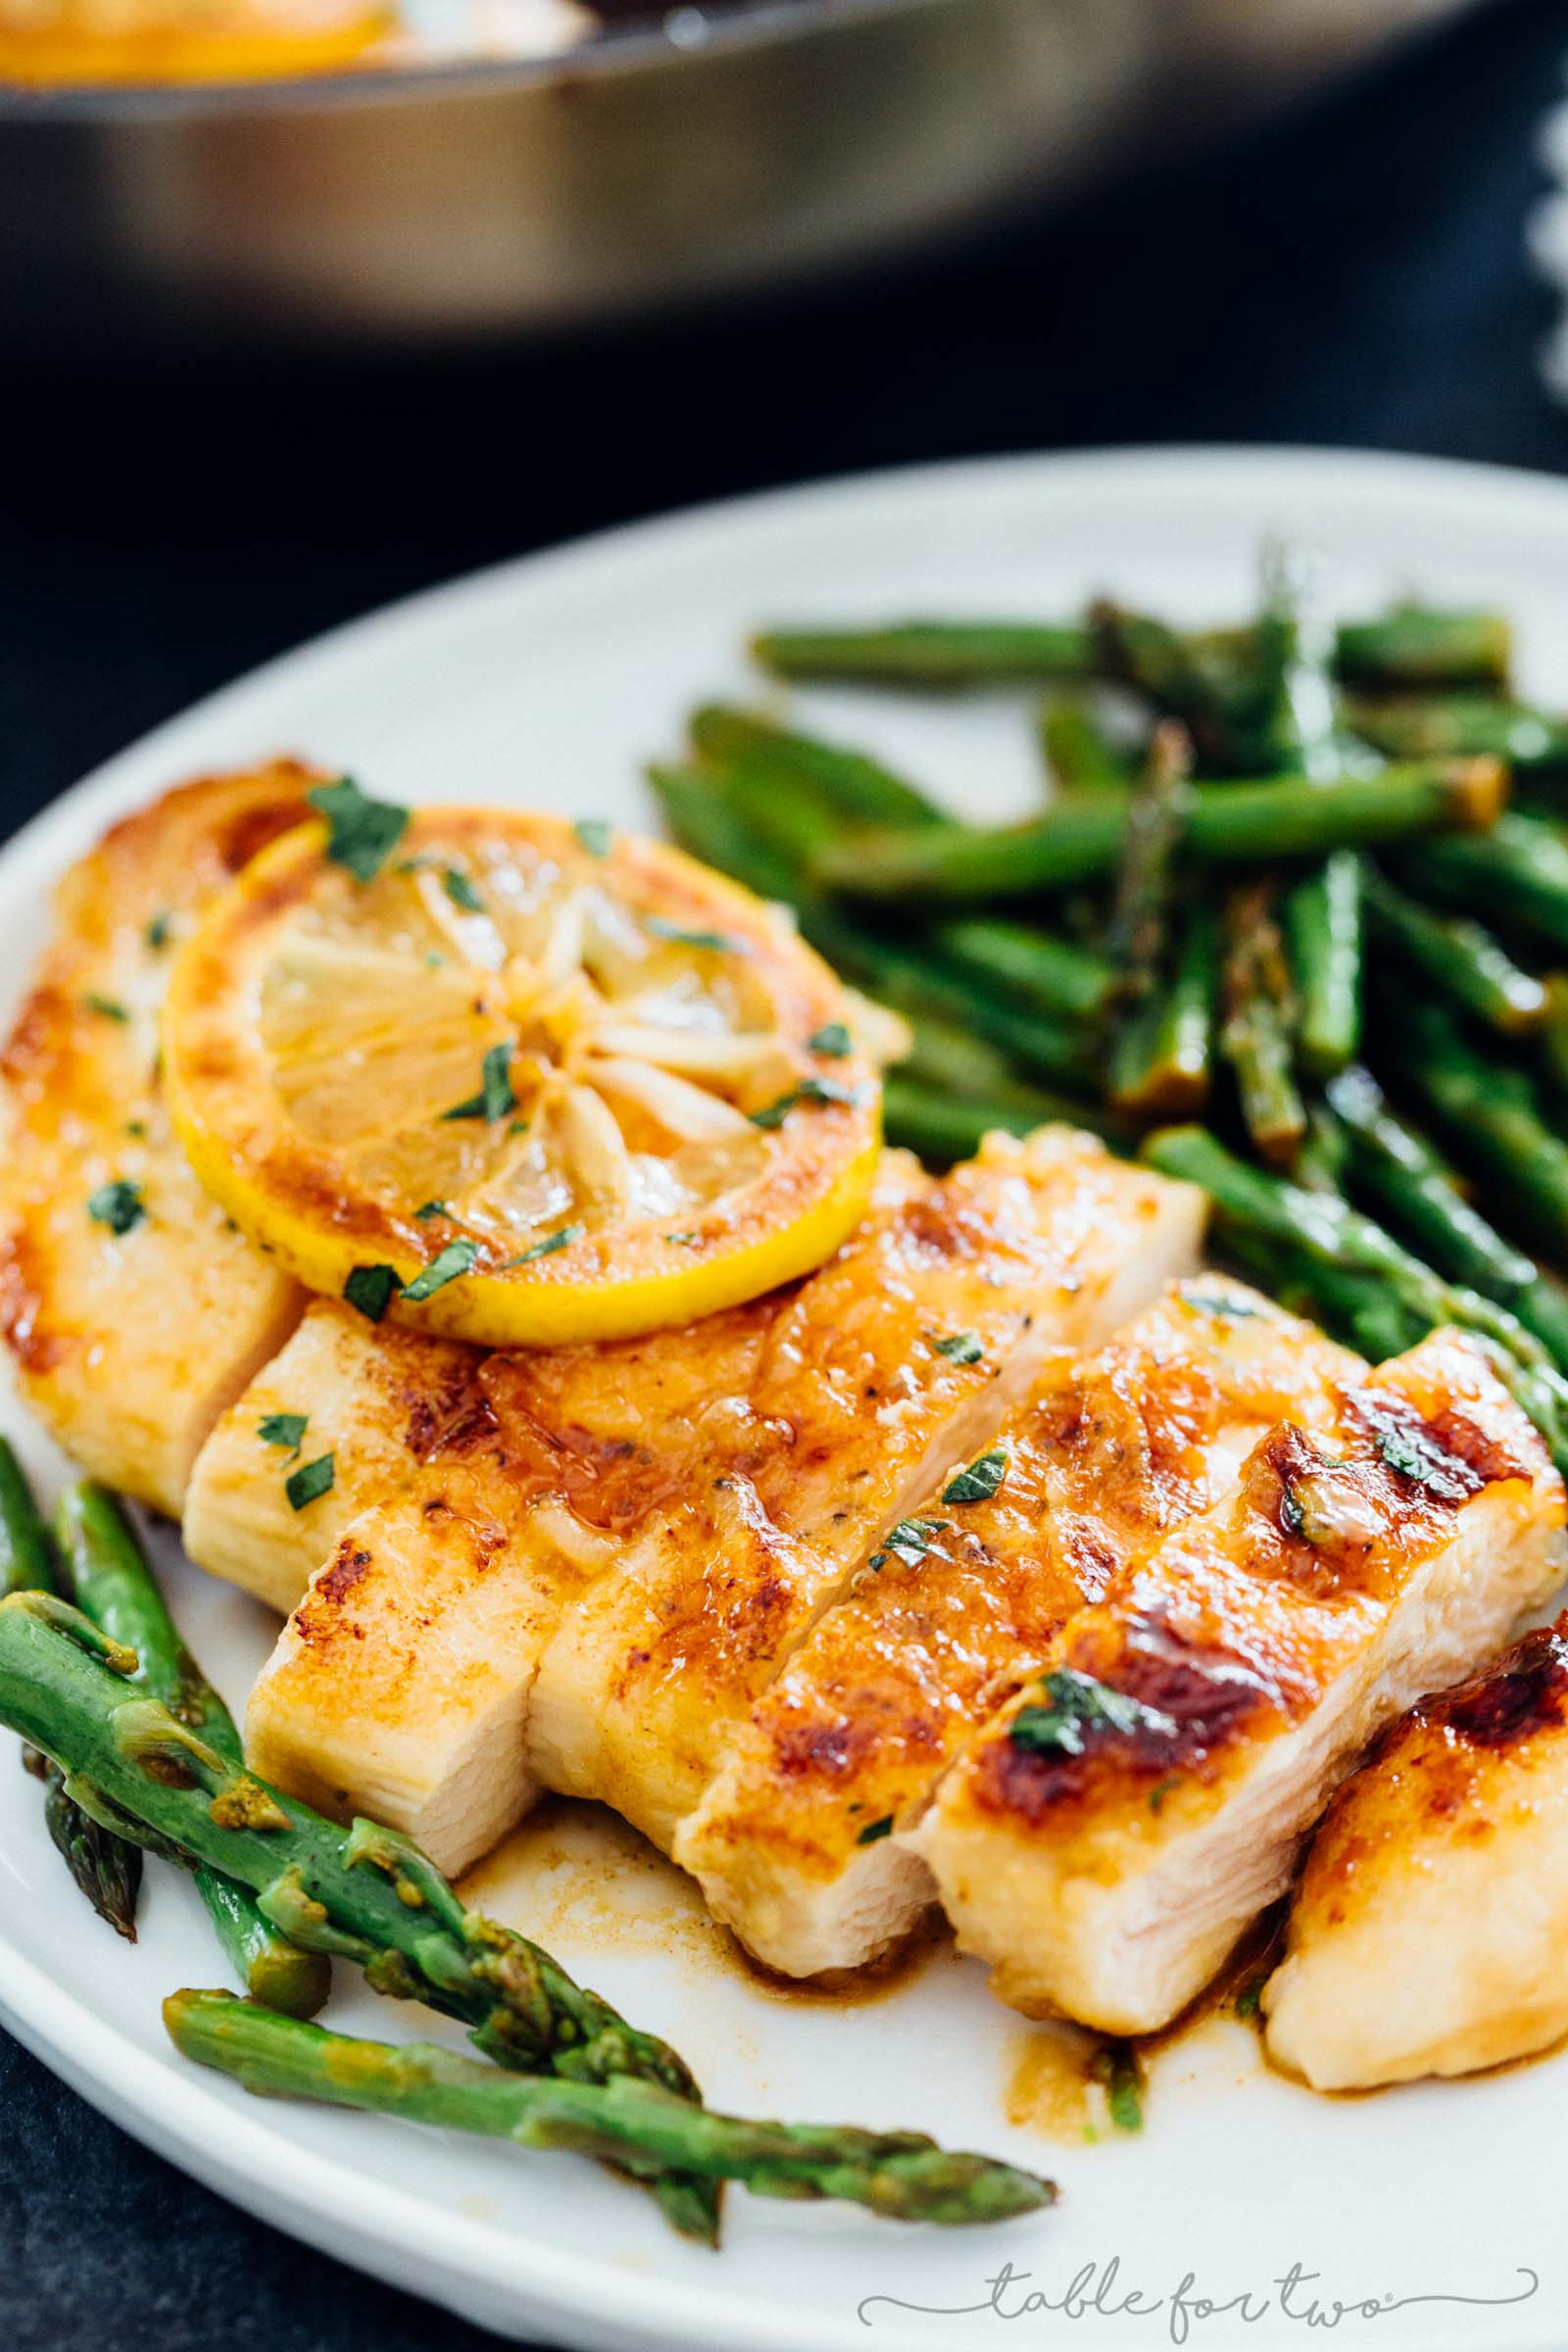 Chicken With Asparagus  Honey Butter Lemon Chicken with Asparagus Seasonal